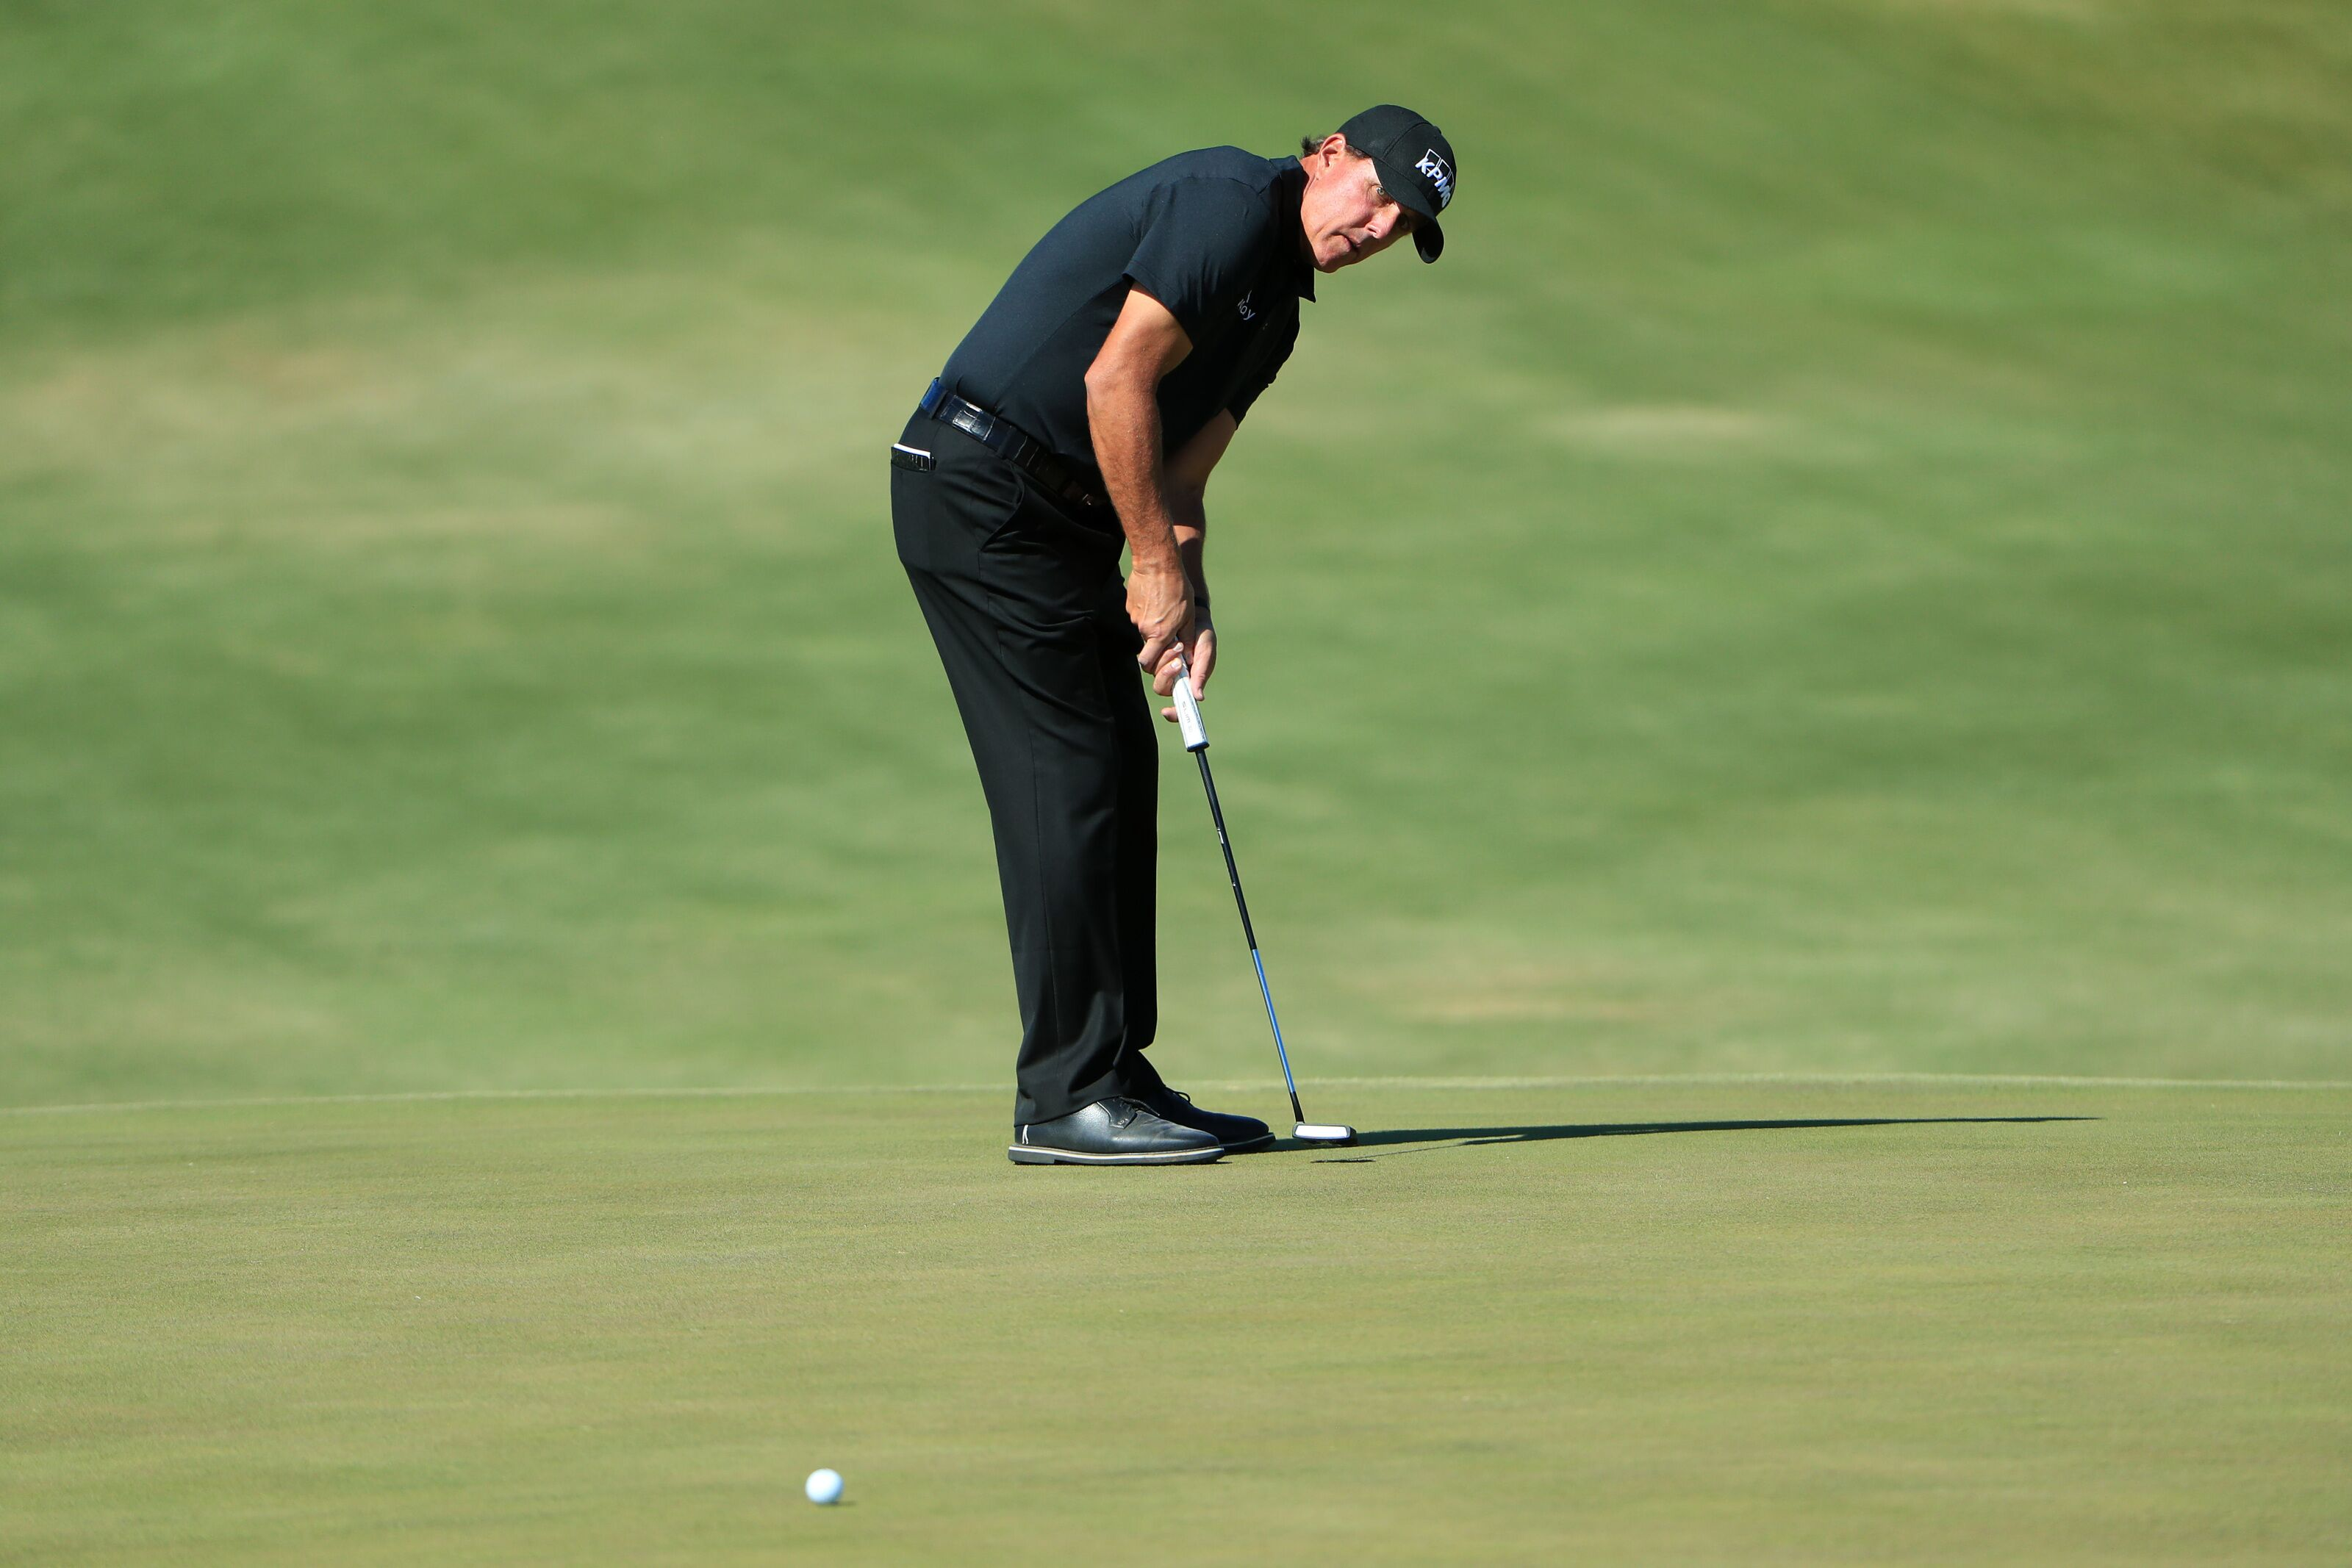 PGA Tour: Three Weeks of Limited-Field, Star-Studded Events